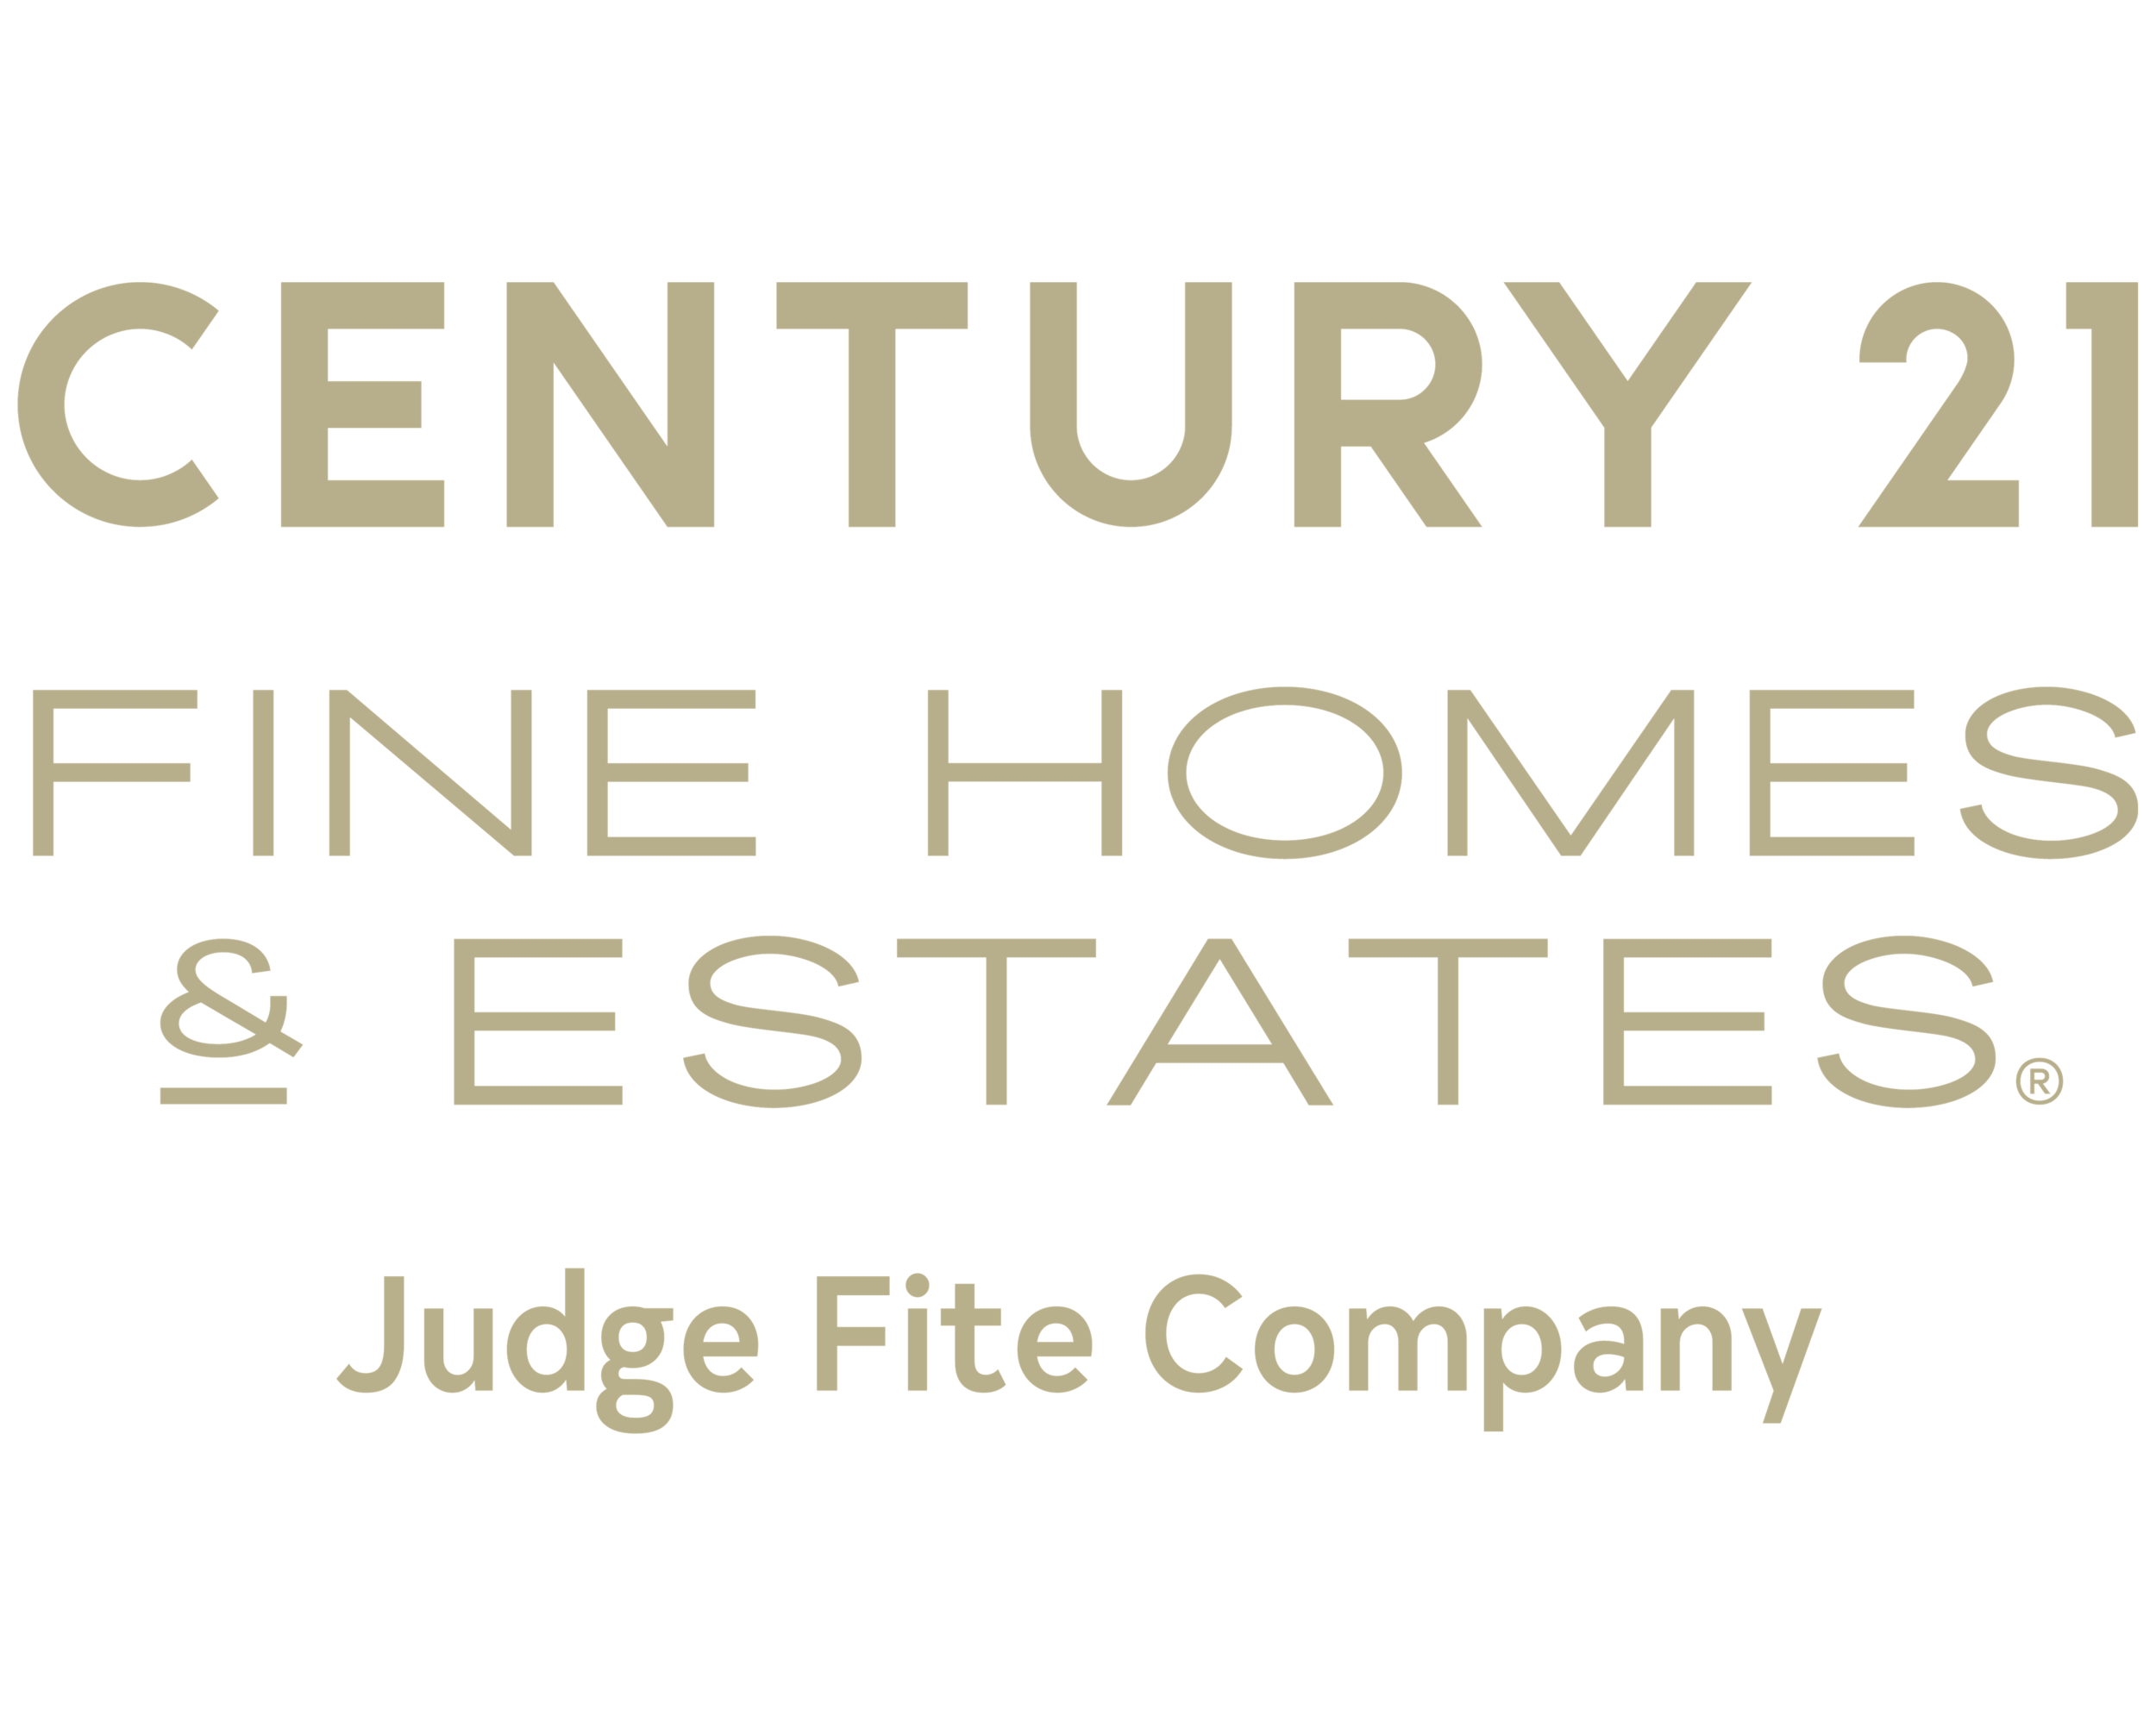 Century 21 logo fine homes and estates.png